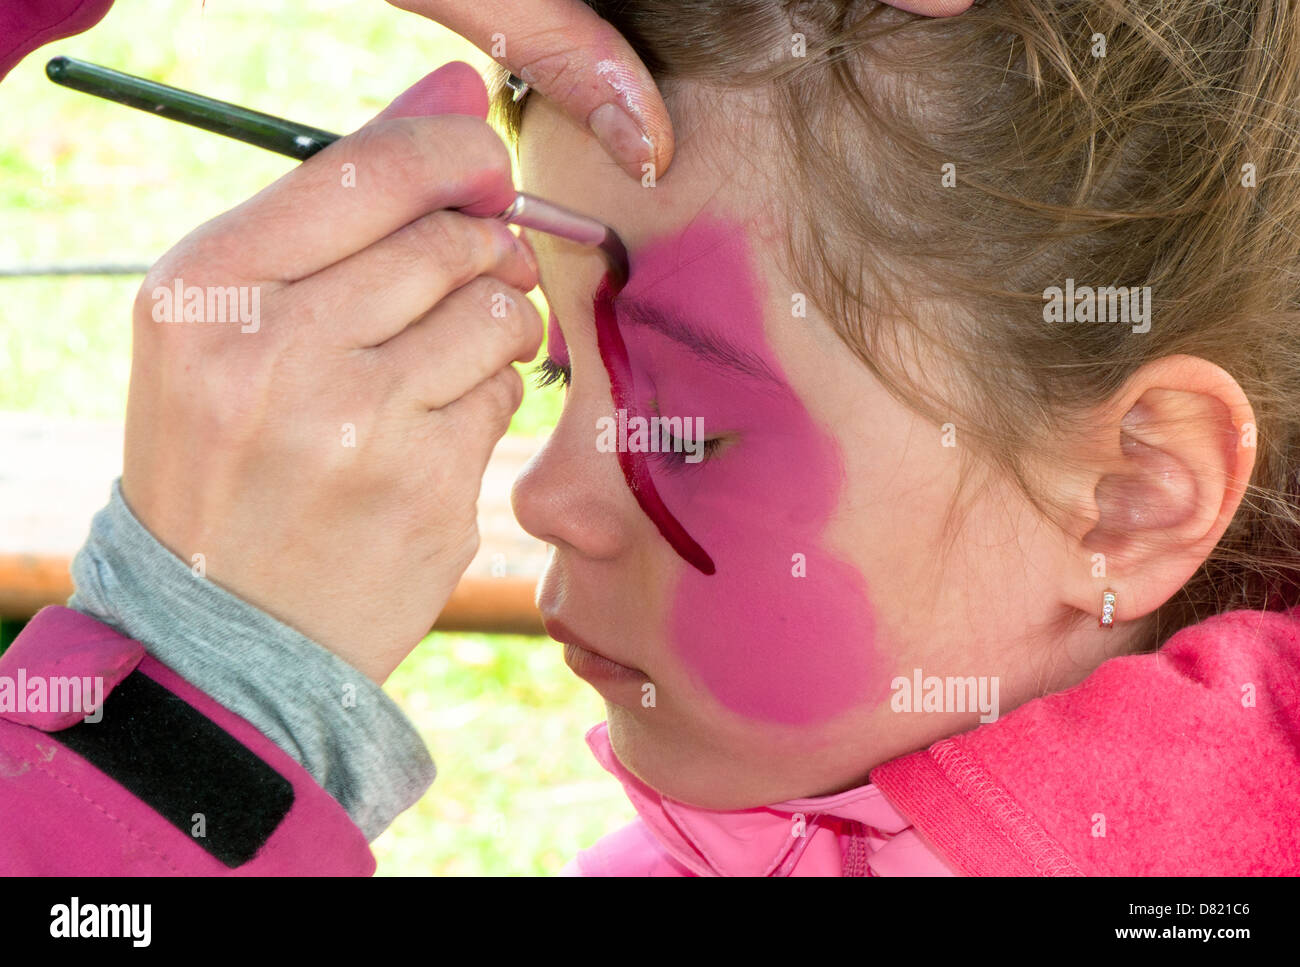 Artist, Creativity, Body Adornment, Body Paint, Caucasian, Child, Preschool, Childhood, Elementary Age, Face Paint, - Stock Image